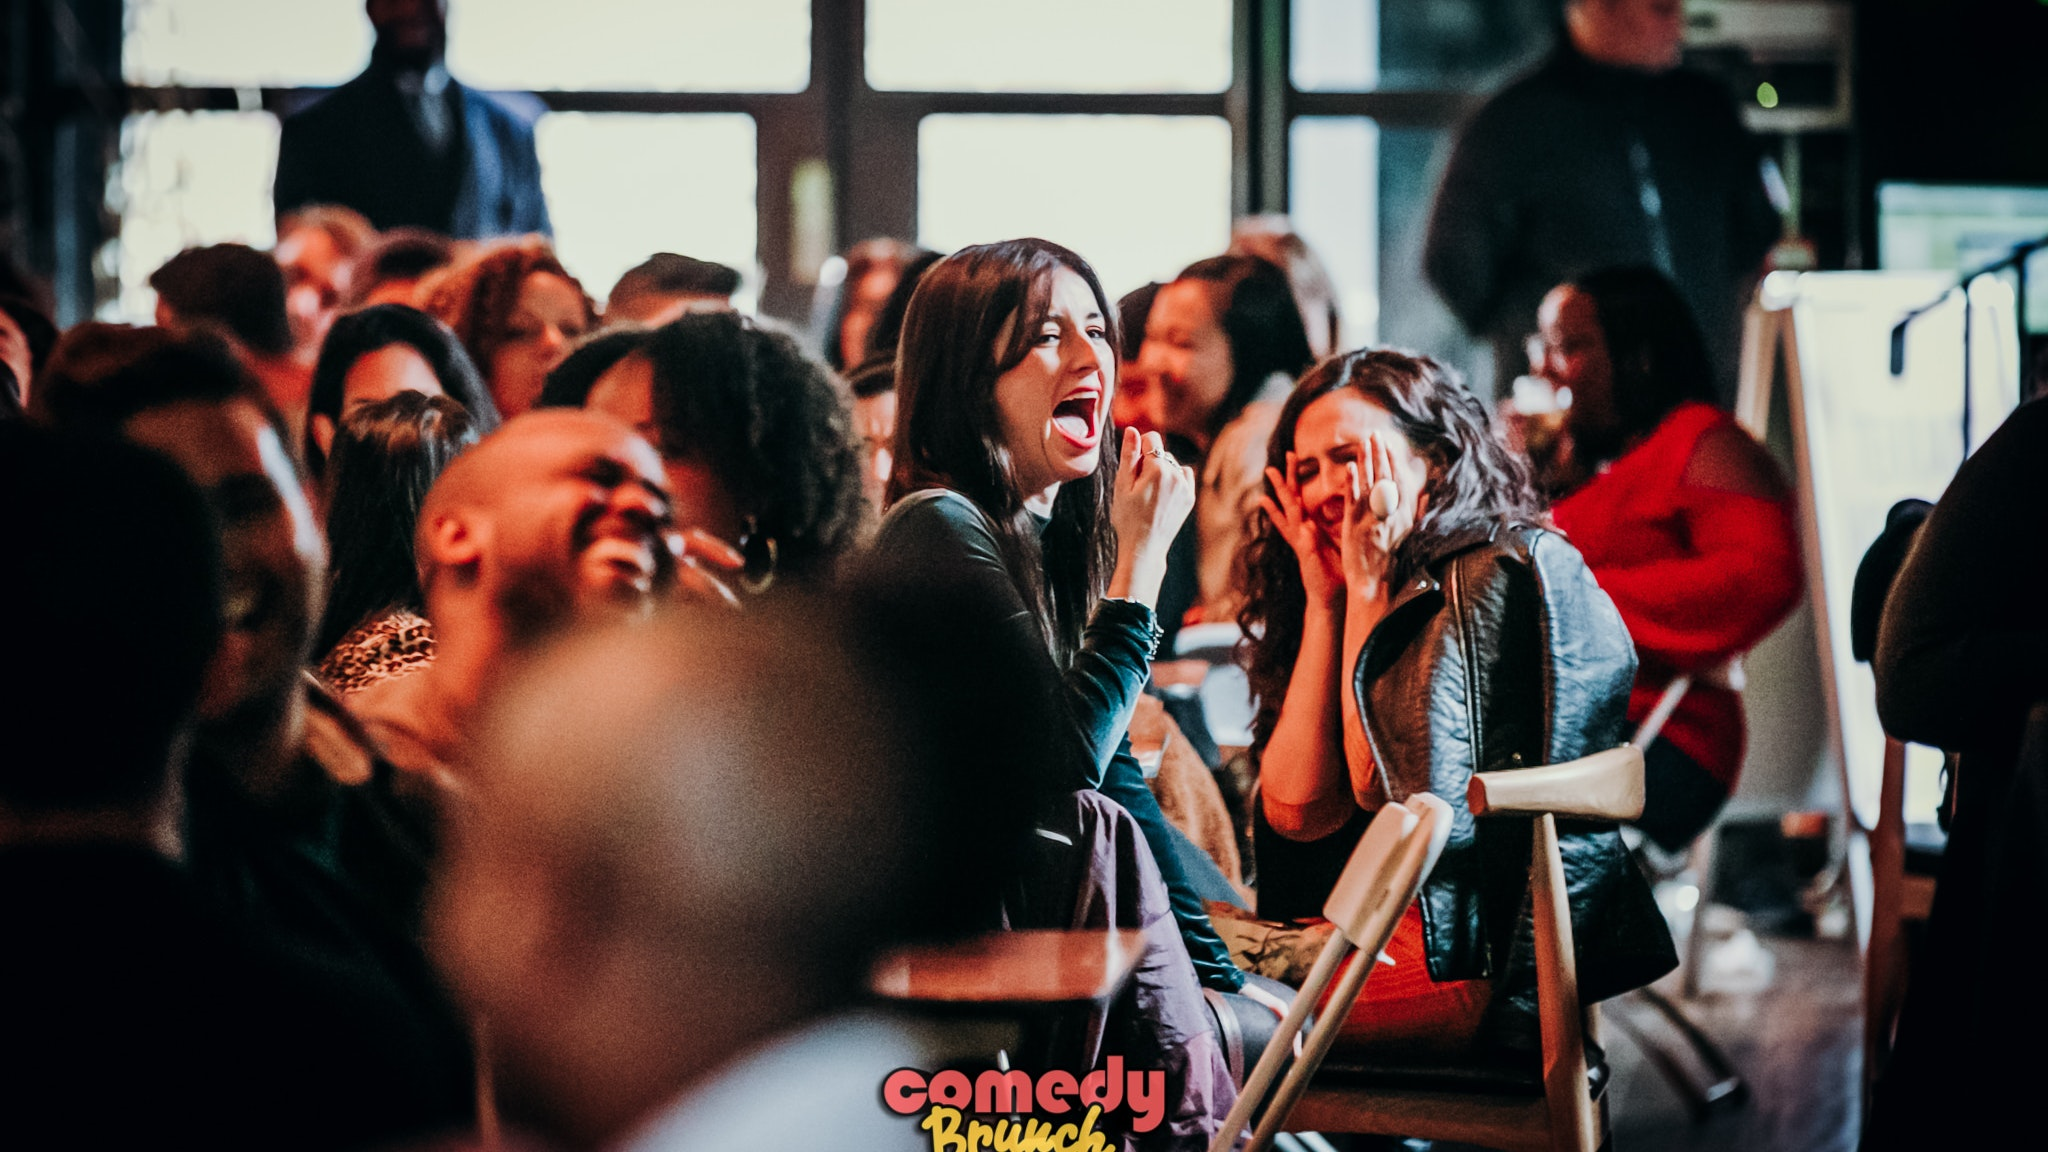 Comedy Brunch – 29th Feb